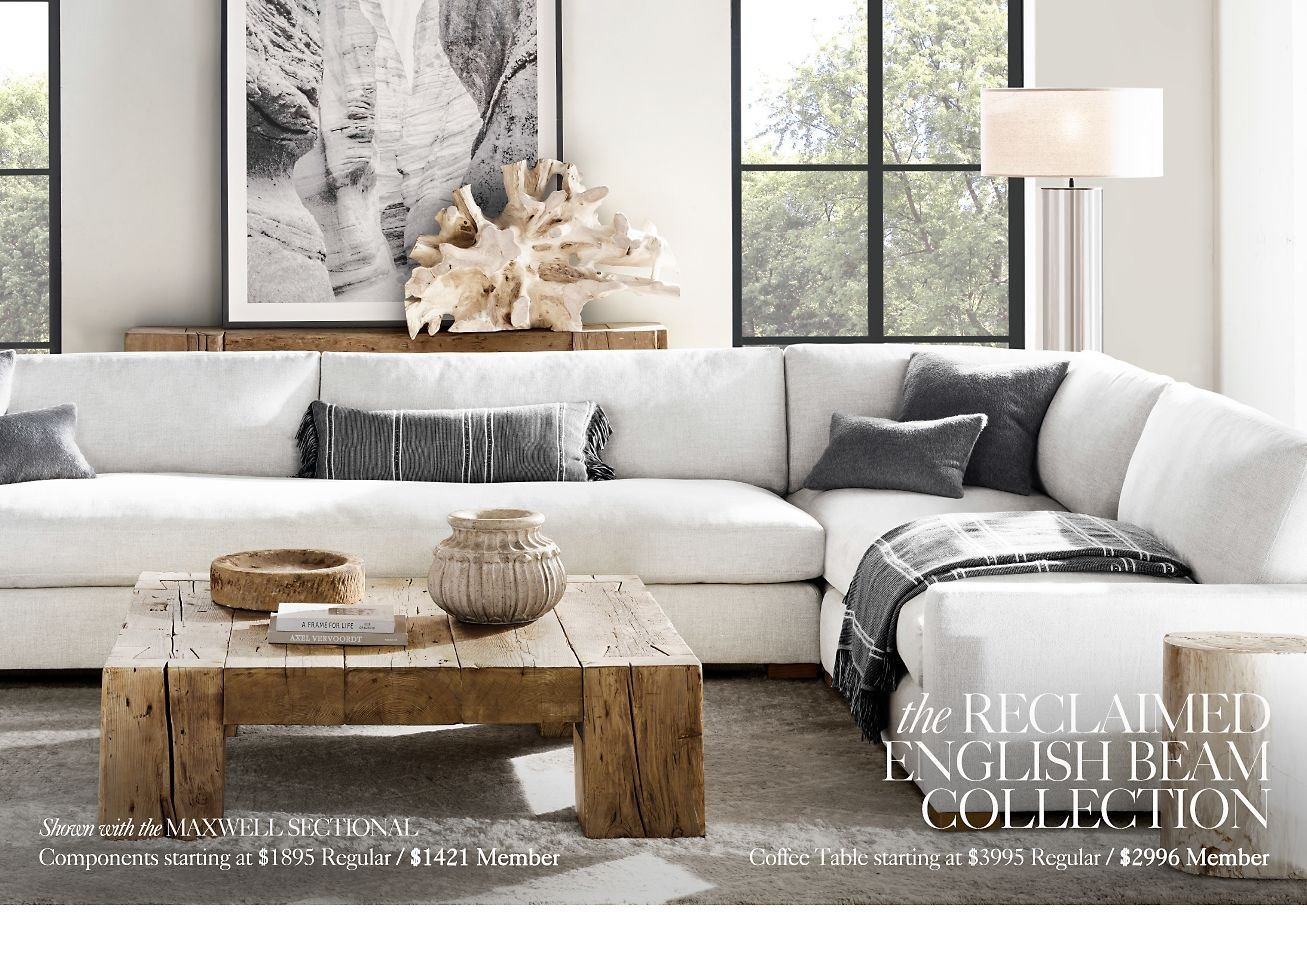 Restoration Hardware The Reclaimed English Beam Collection by